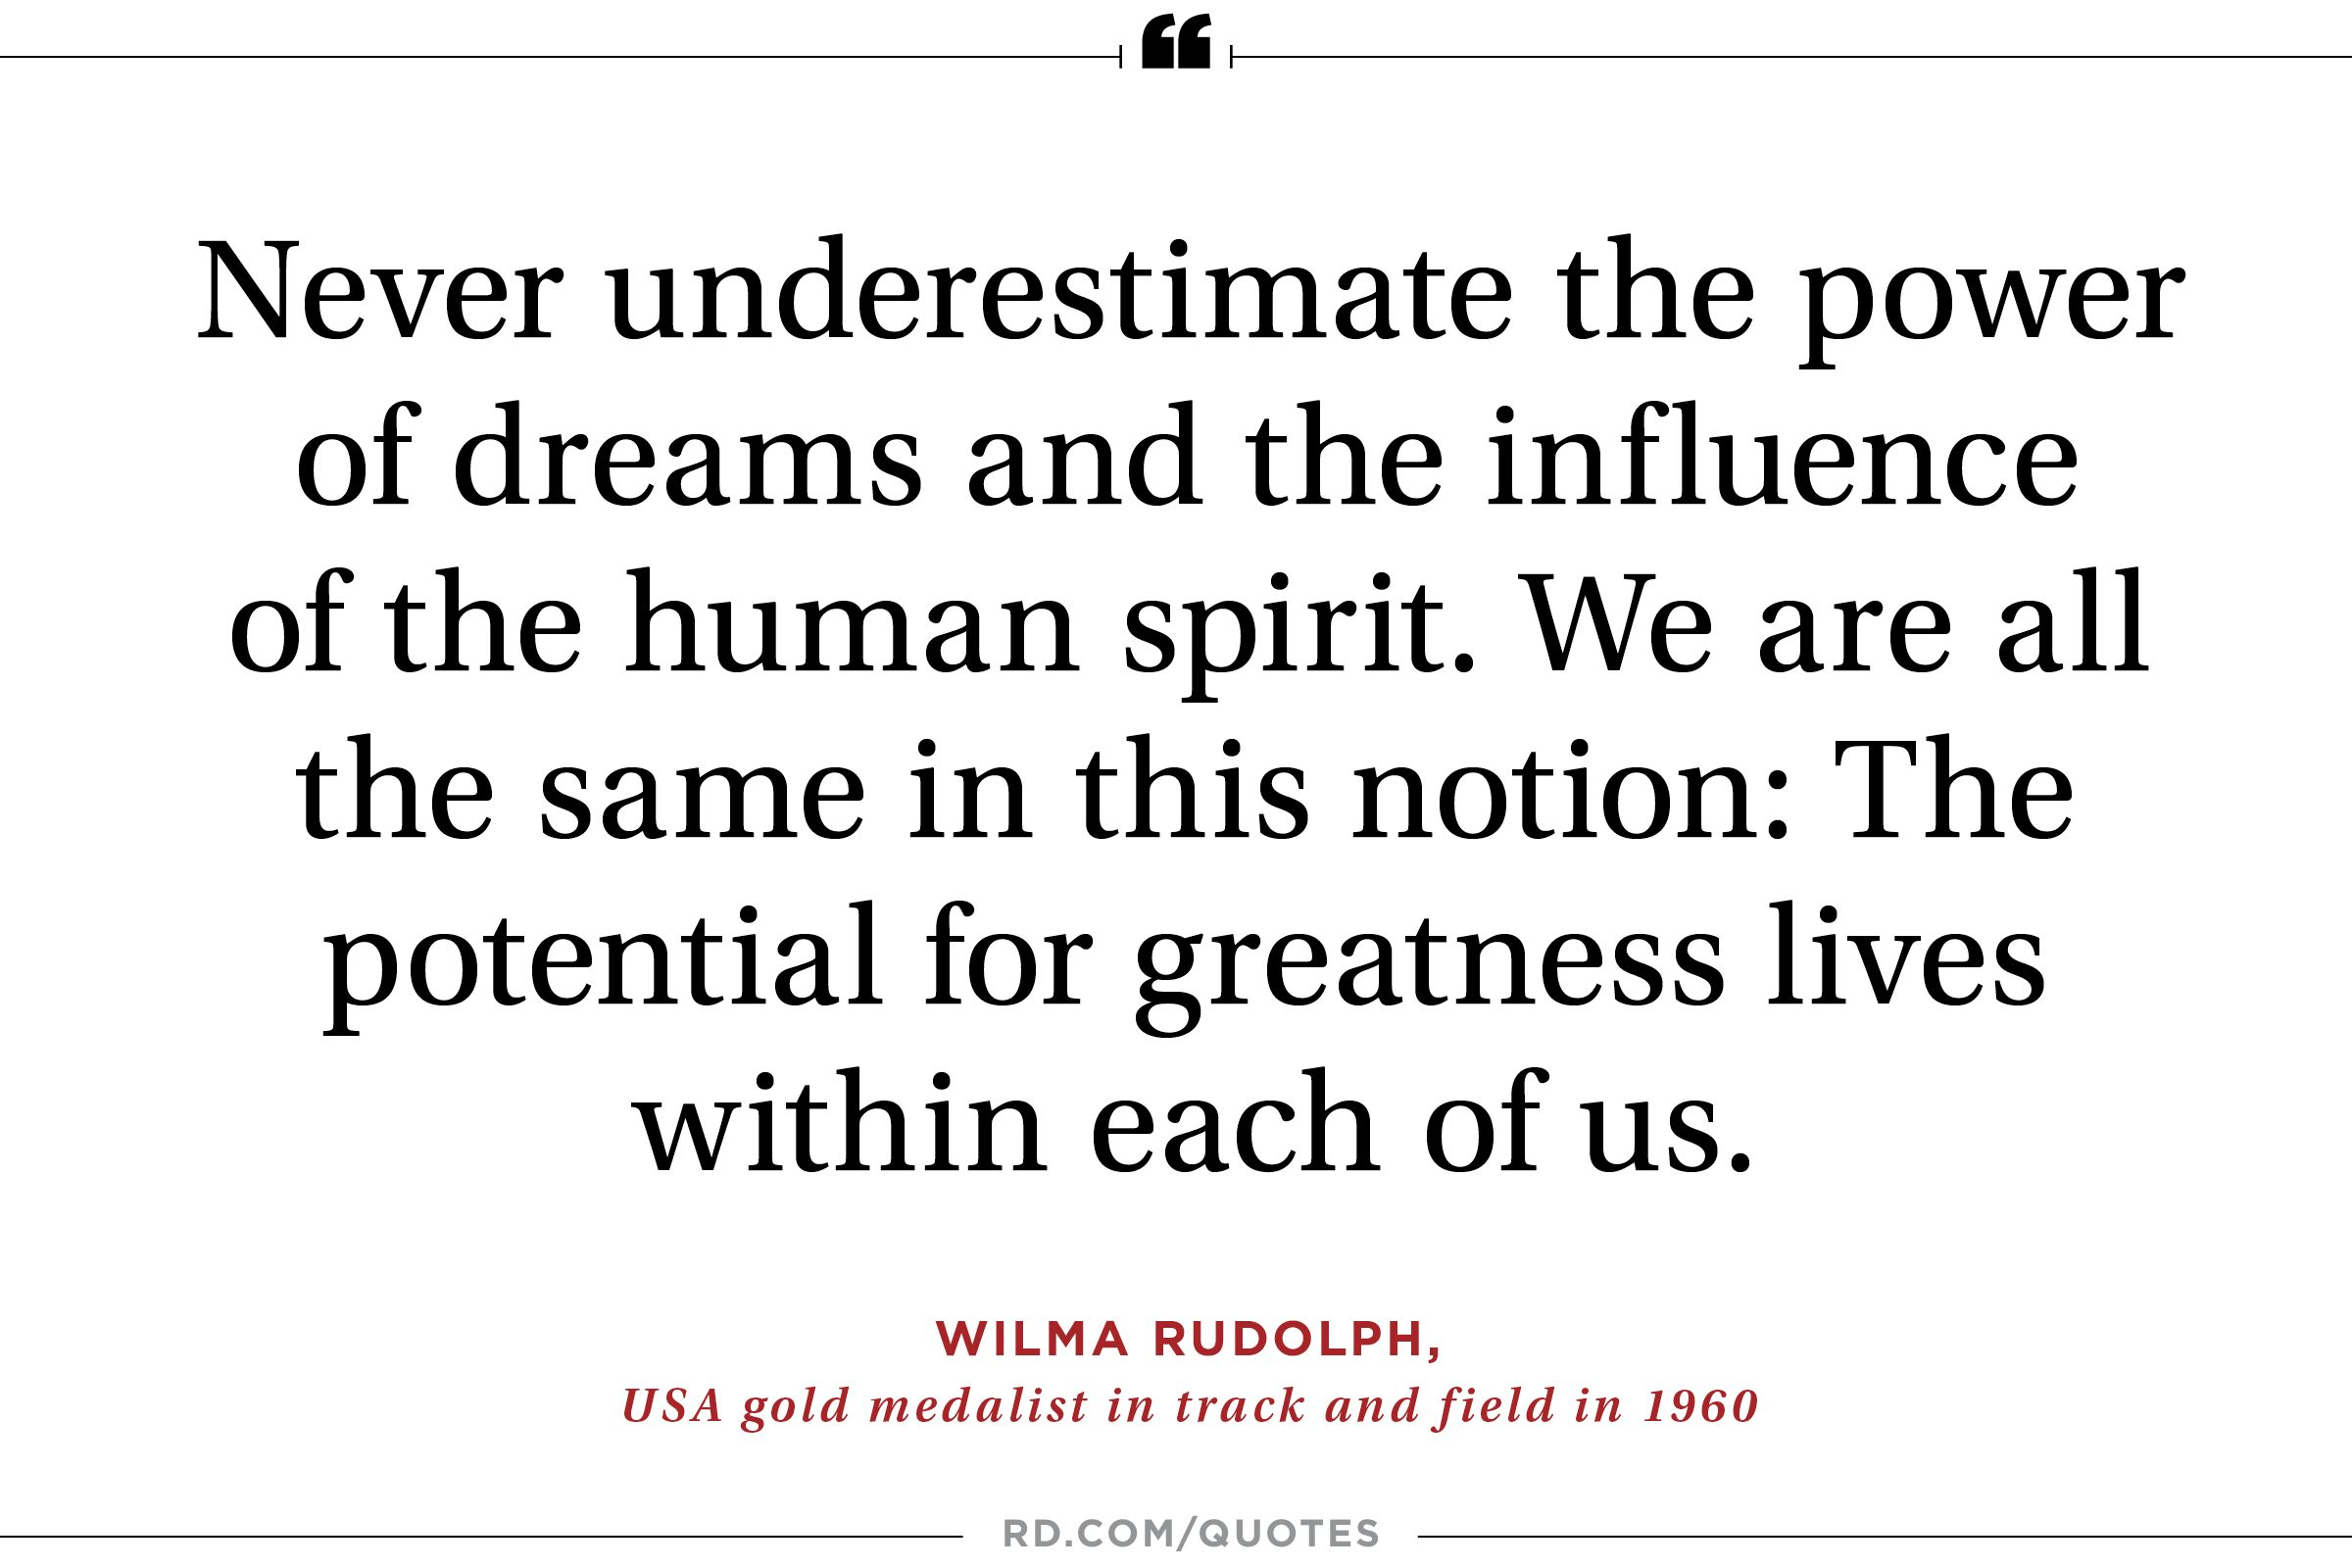 Quotes Within Quotes 21 Motivating Quotes From Olympic Athletes  Reader's Digest